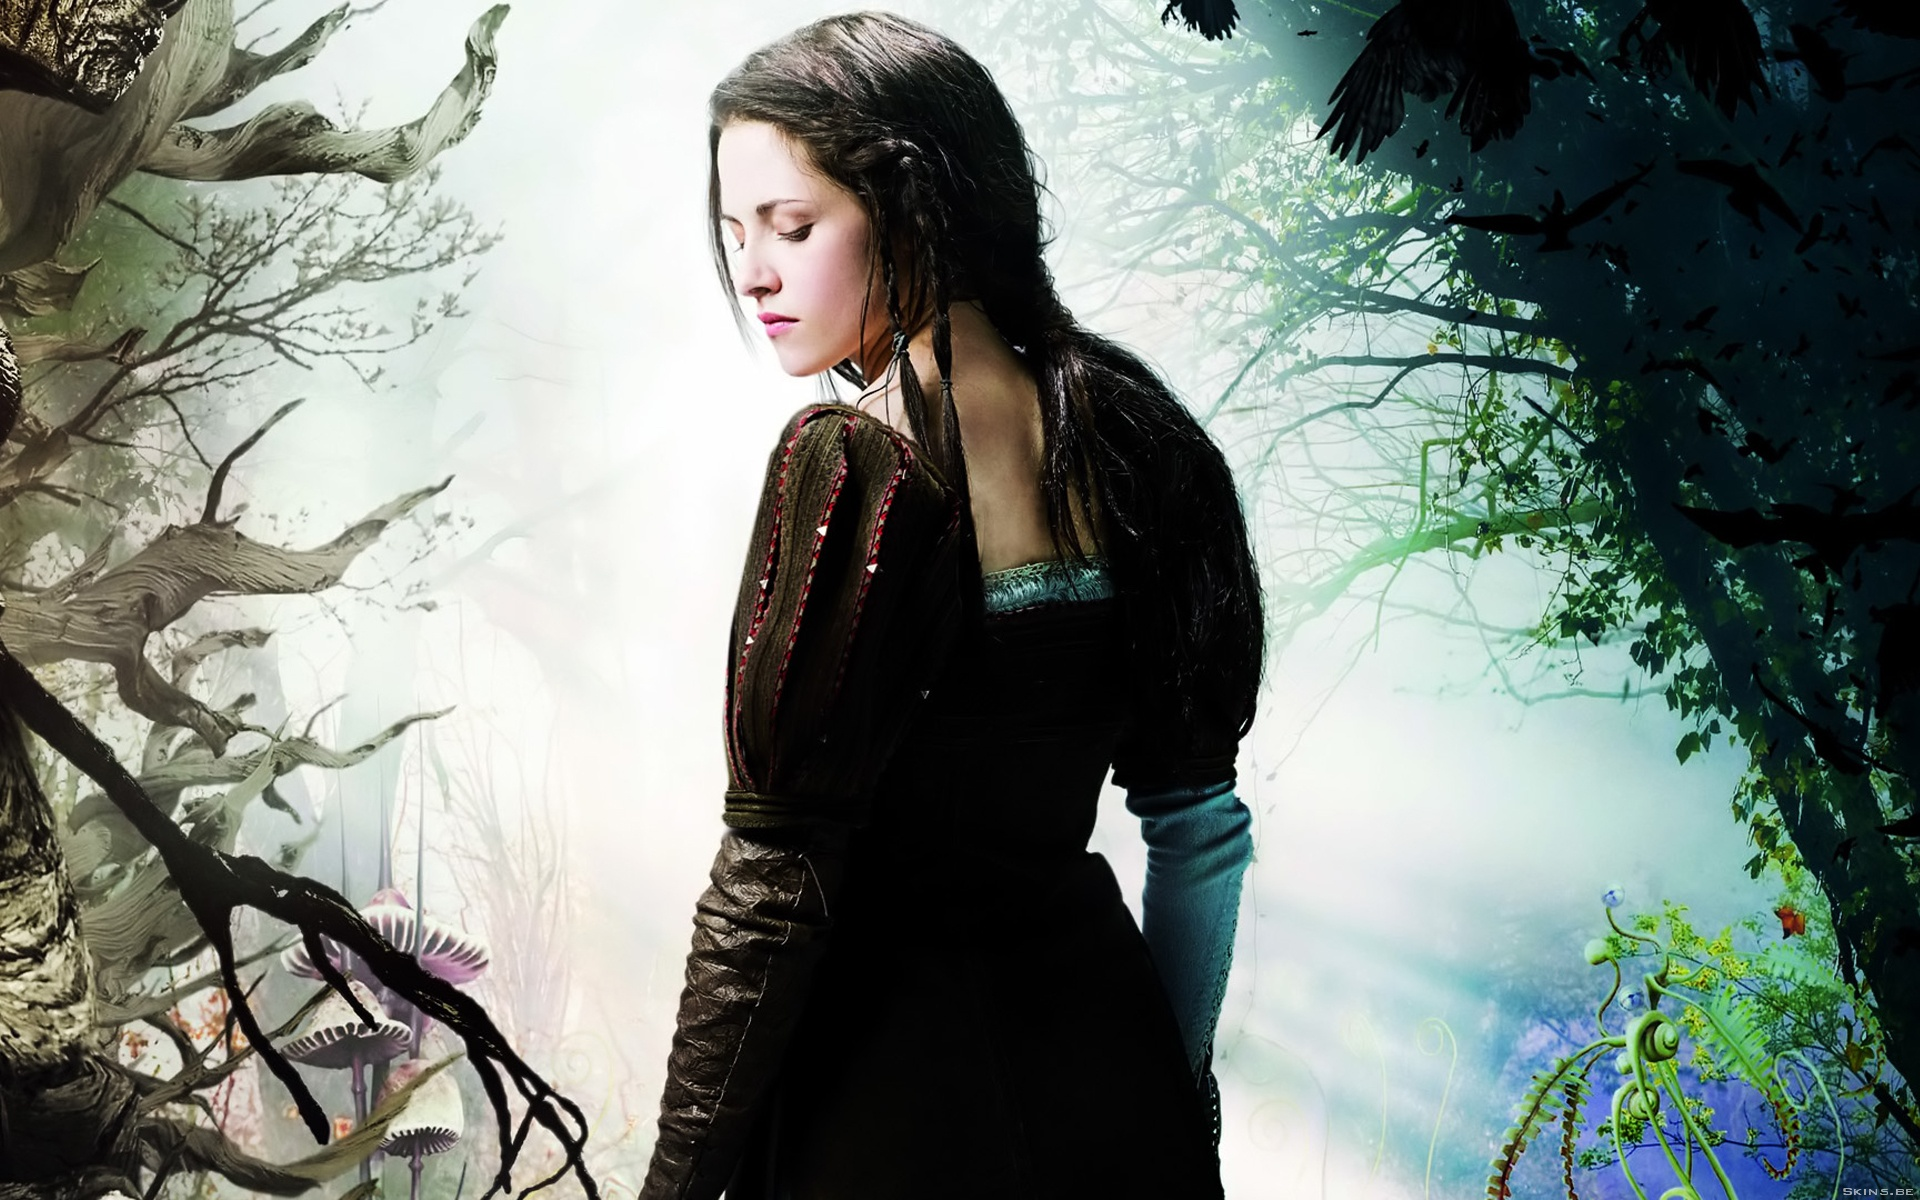 Kristen Stewart in Snow White and the Huntsman wallpaper